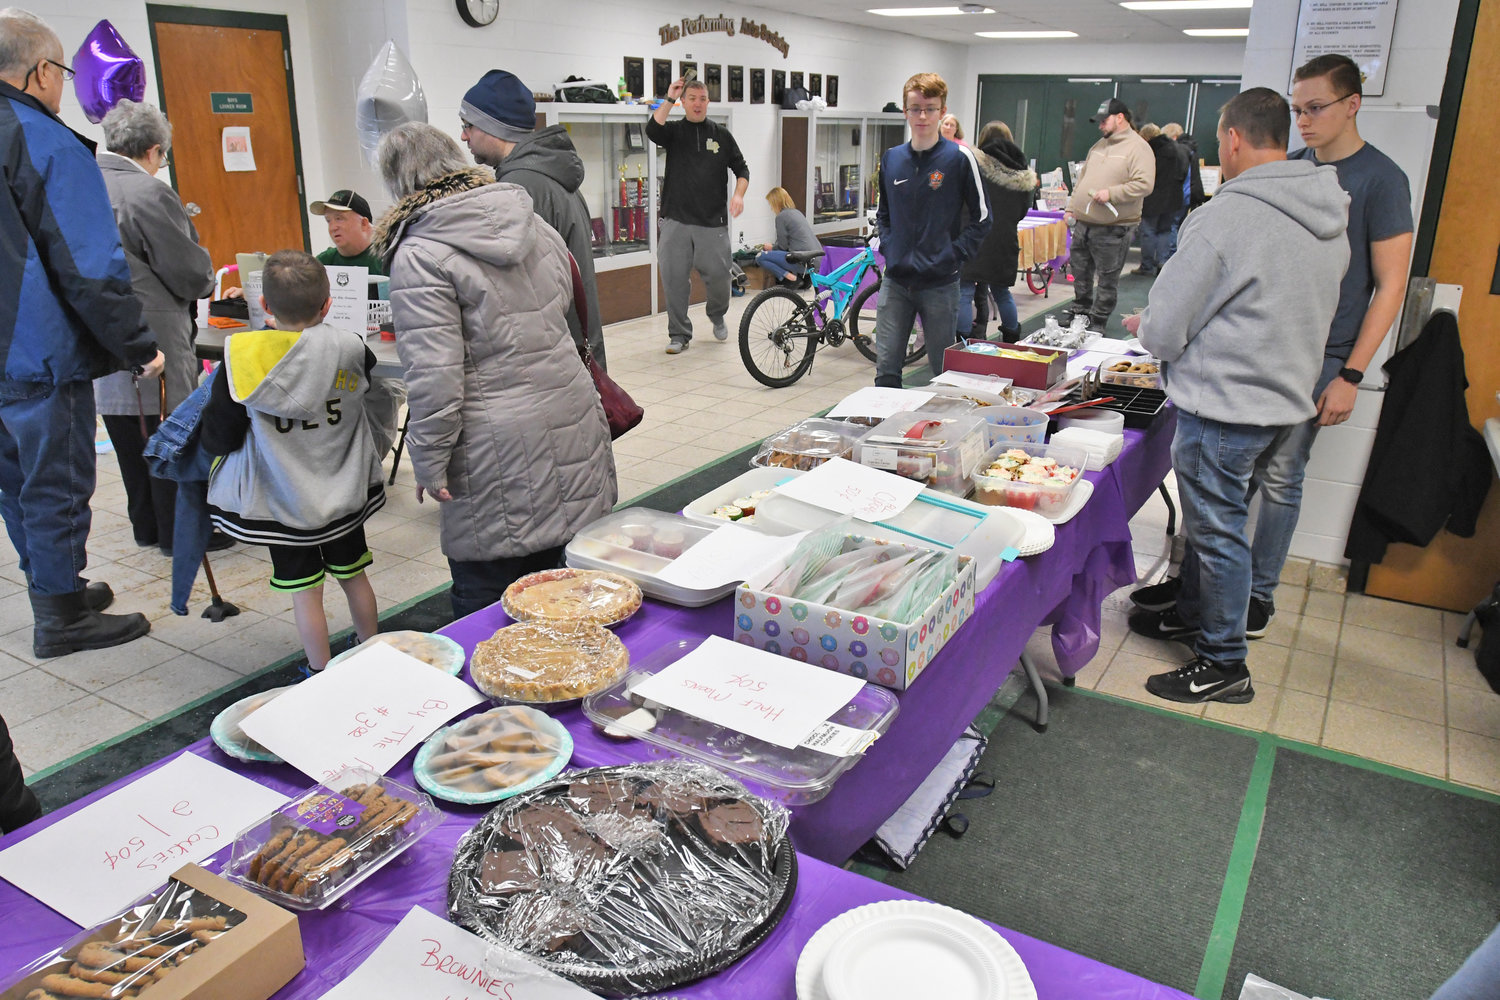 GOODIES FOR A GOOD CAUSE — The bake sale at Westmoreland High School helped raise money for the Golisano Children's Hospital in Syracuse for the Hoops for the Hospital chairty basketball game against Oriskany Central School Saturday, Jan. 19.